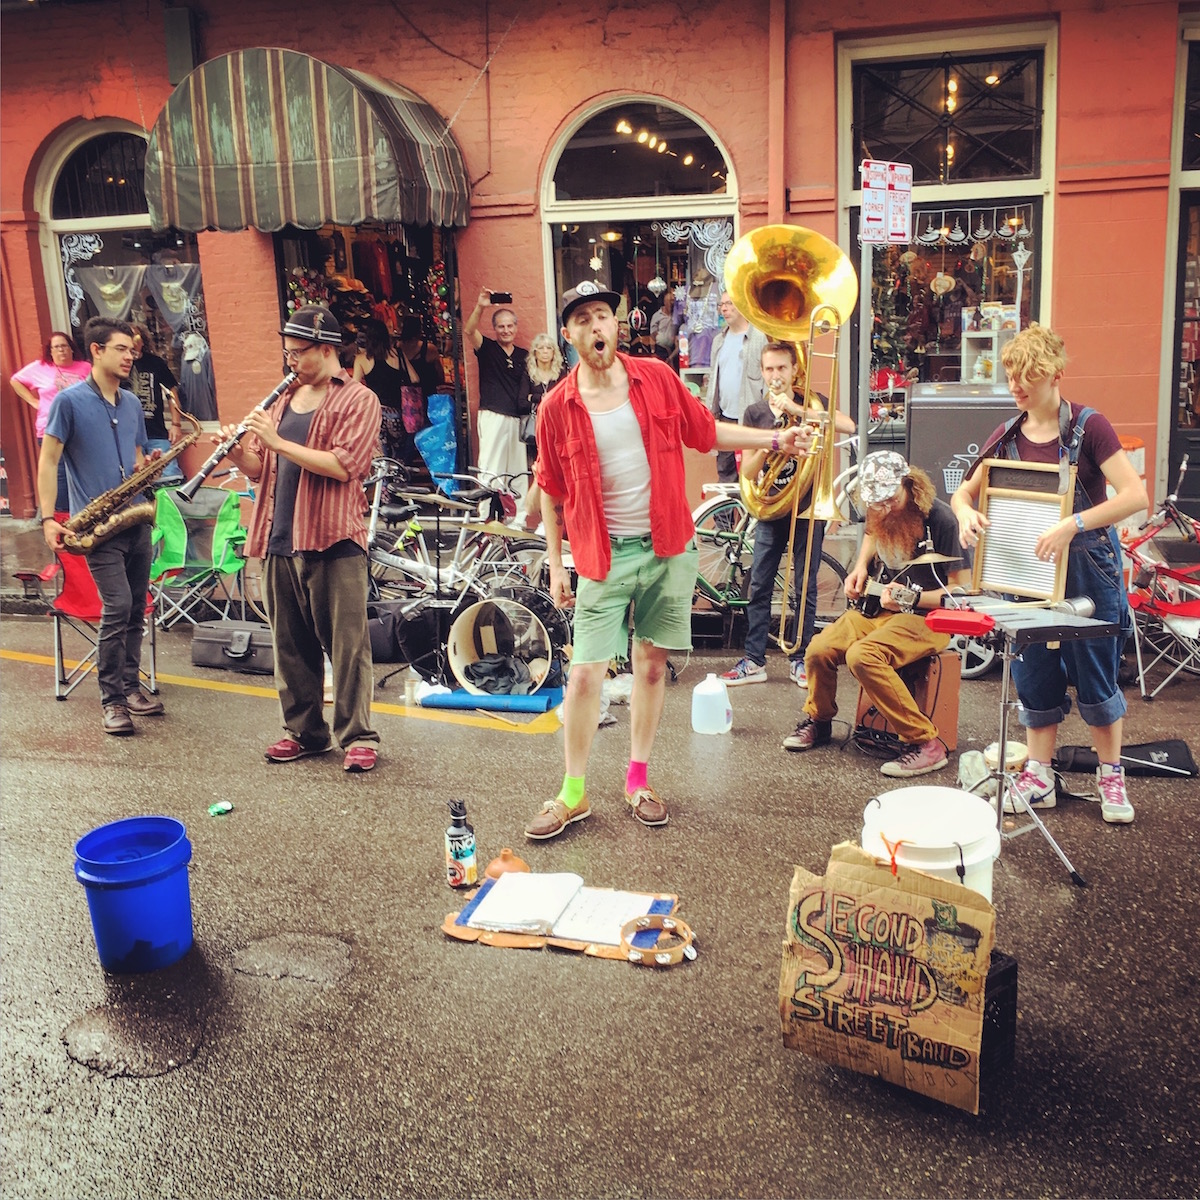 Second Hand Street Band